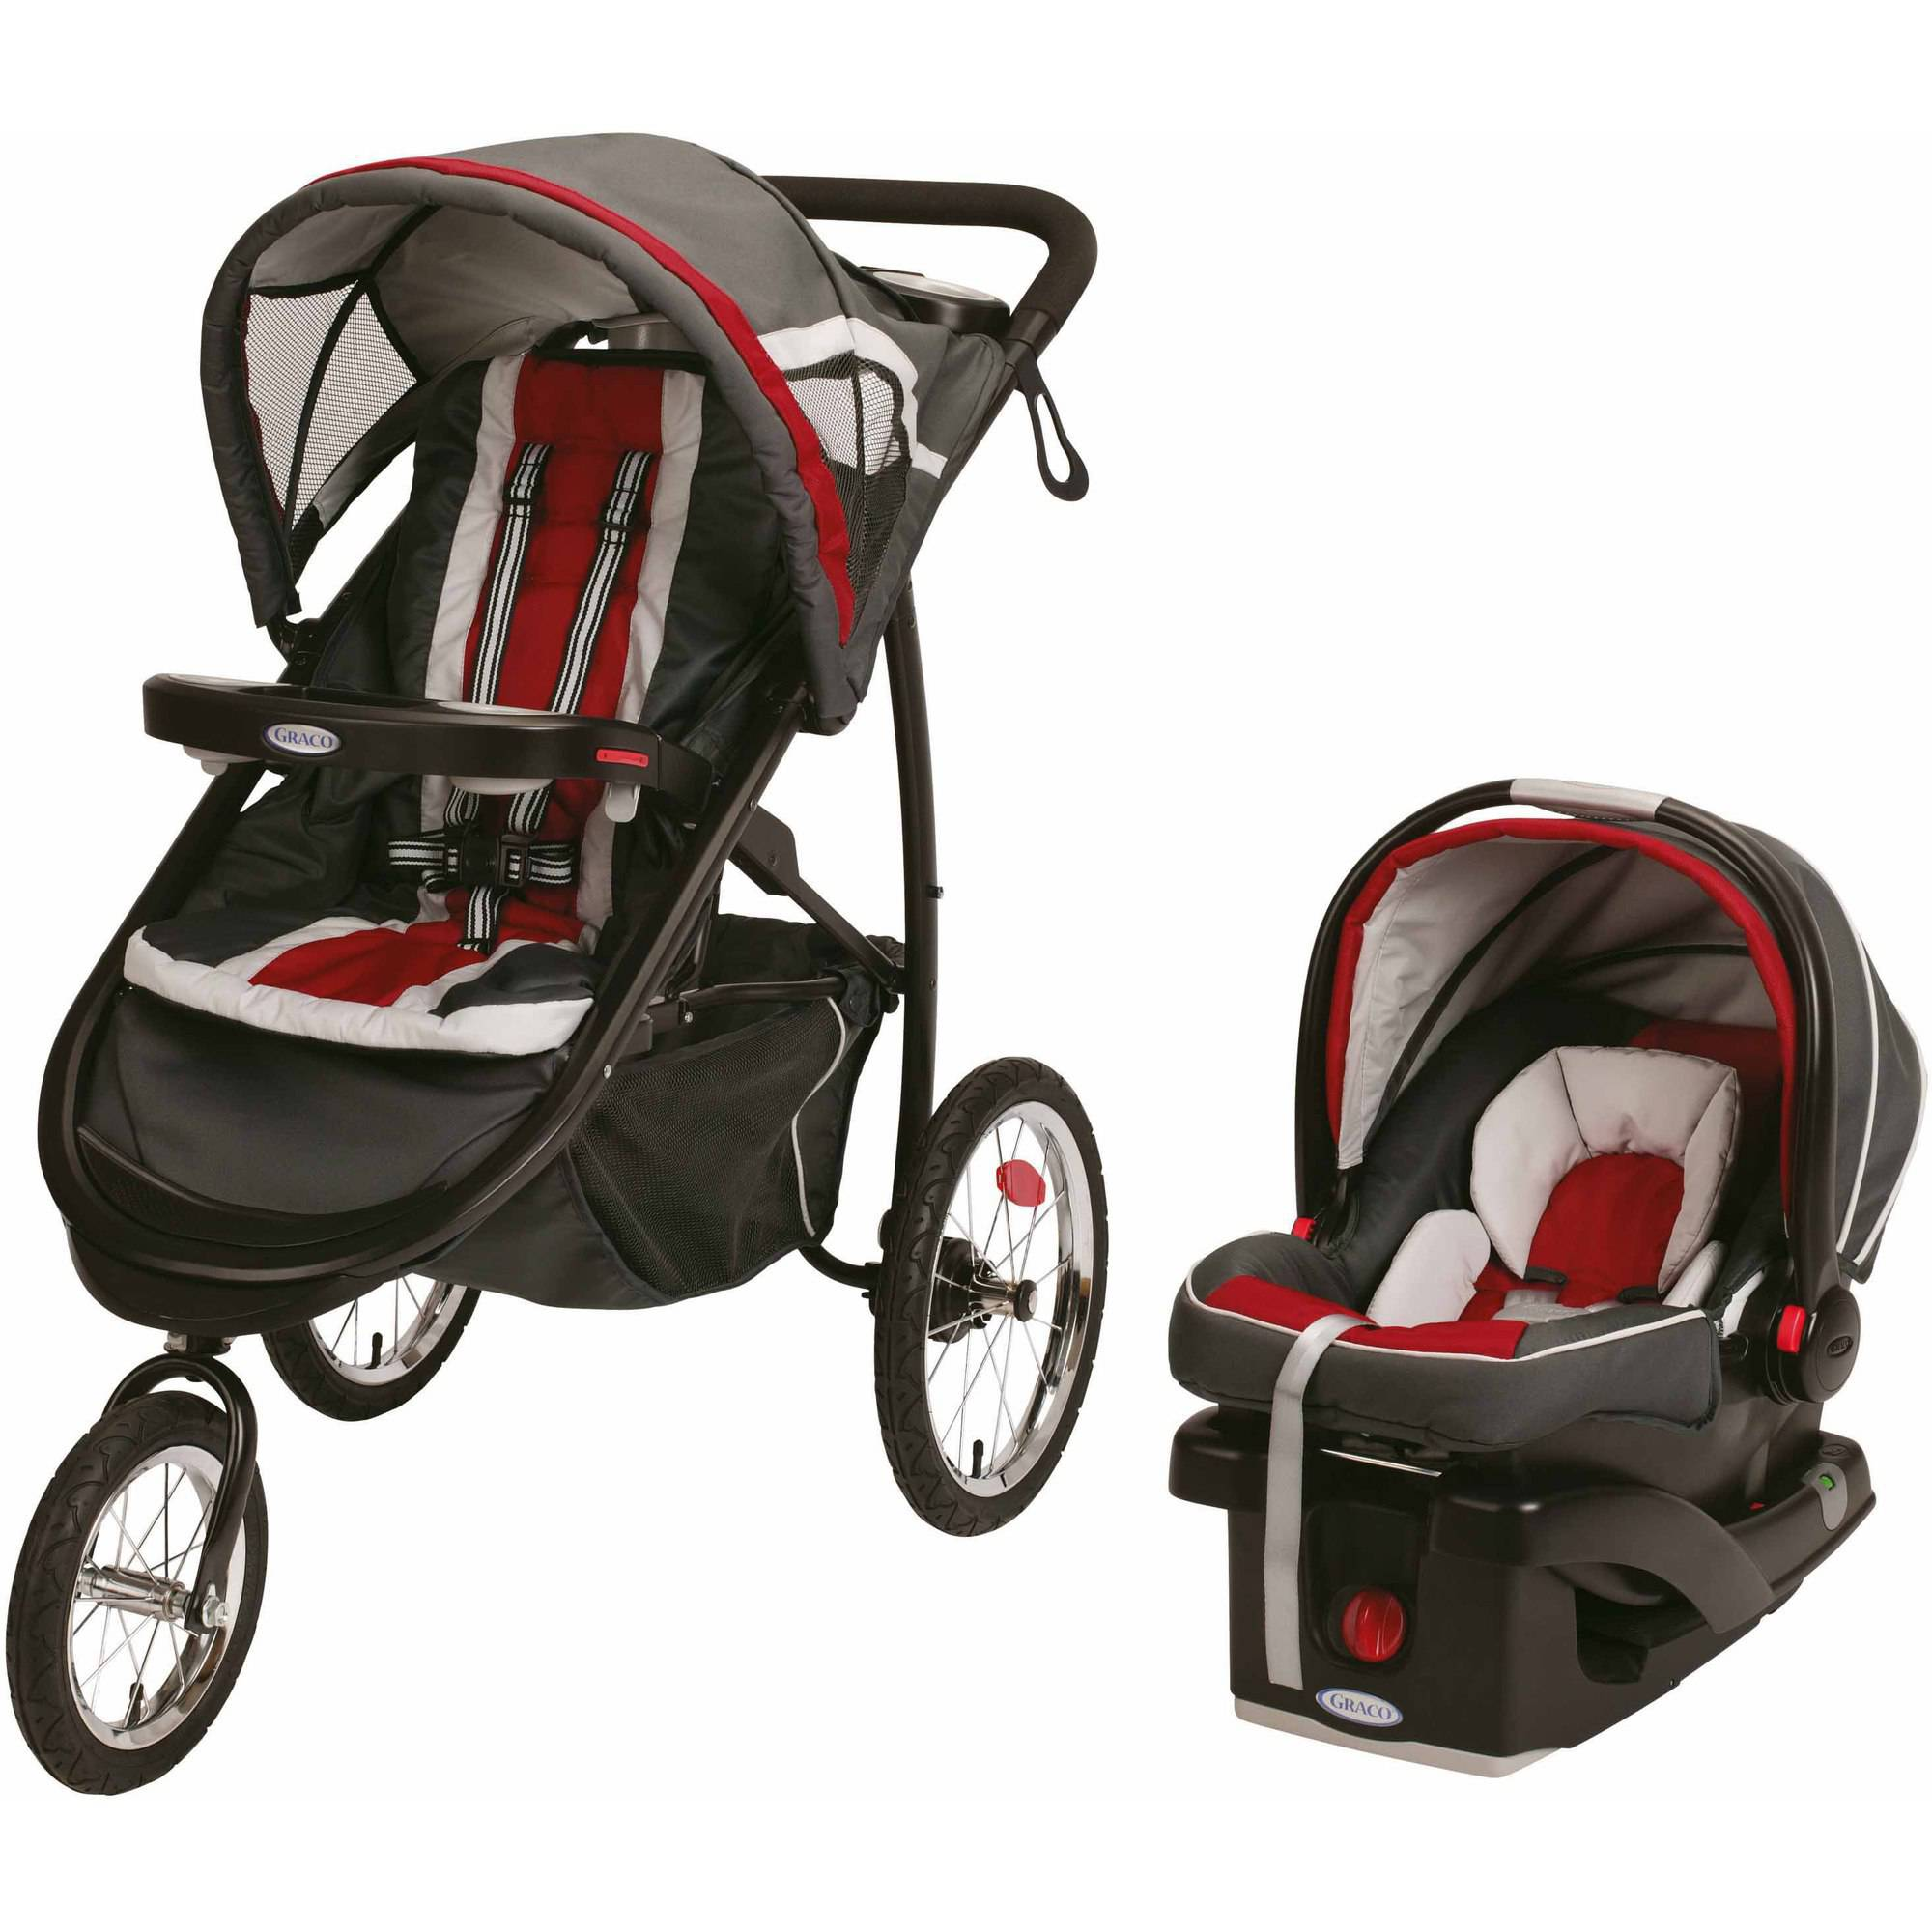 Graco Fastaction Fold Jogger Click Connect Jogging